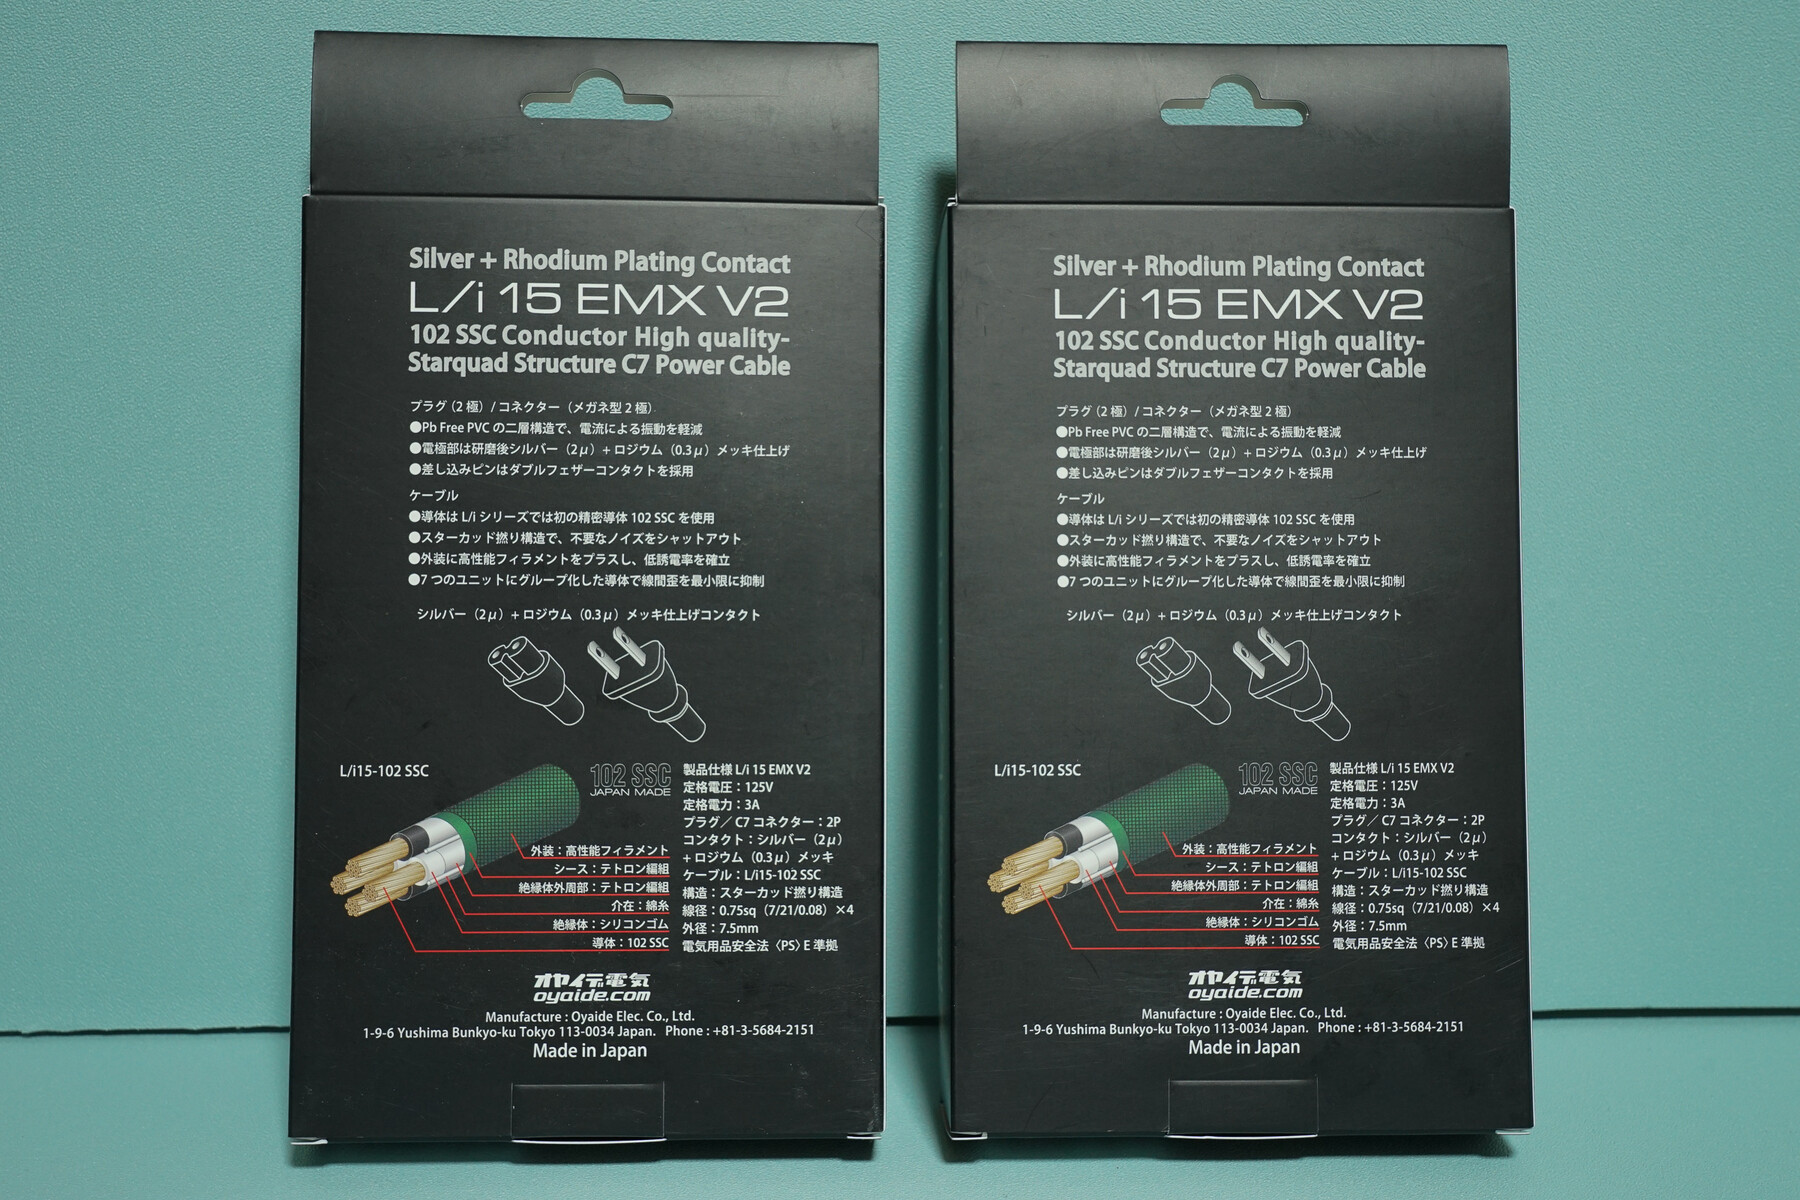 OYAIDE L//i 15 EMX V2 Power Cable C7 Connector 1.3m L//i15